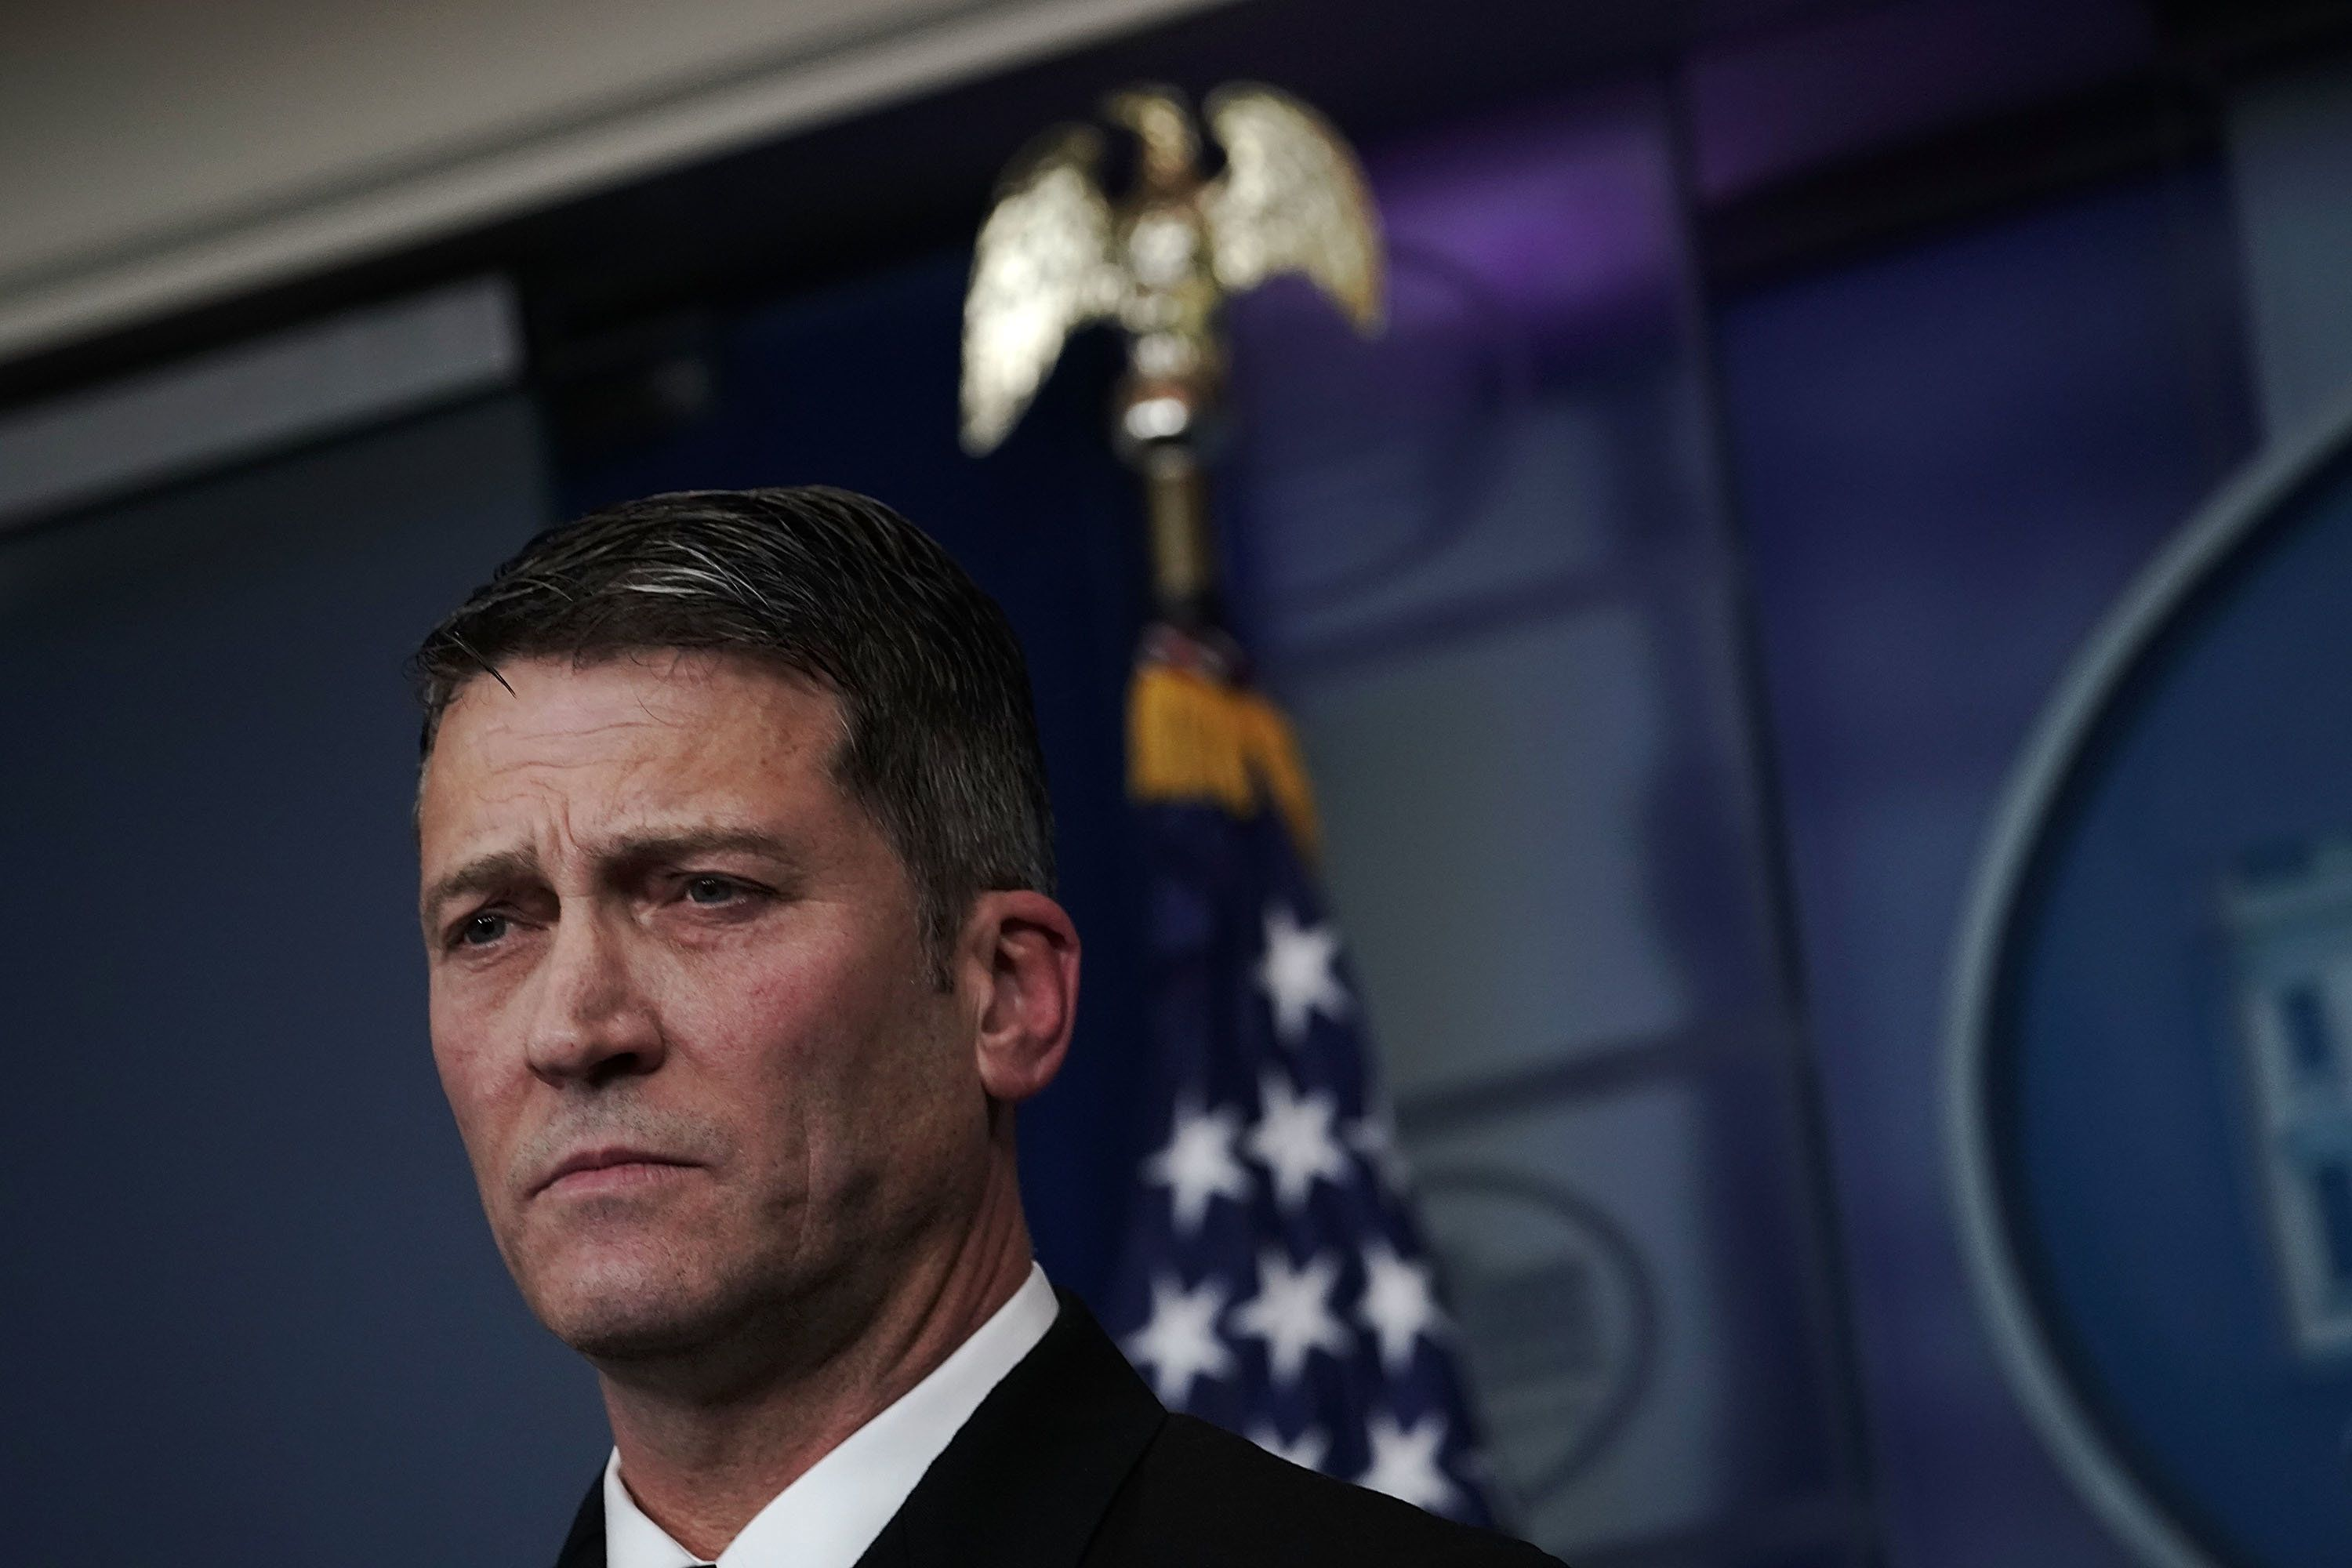 Ronny Jackson still on job after withdrawing from nomination, White House says